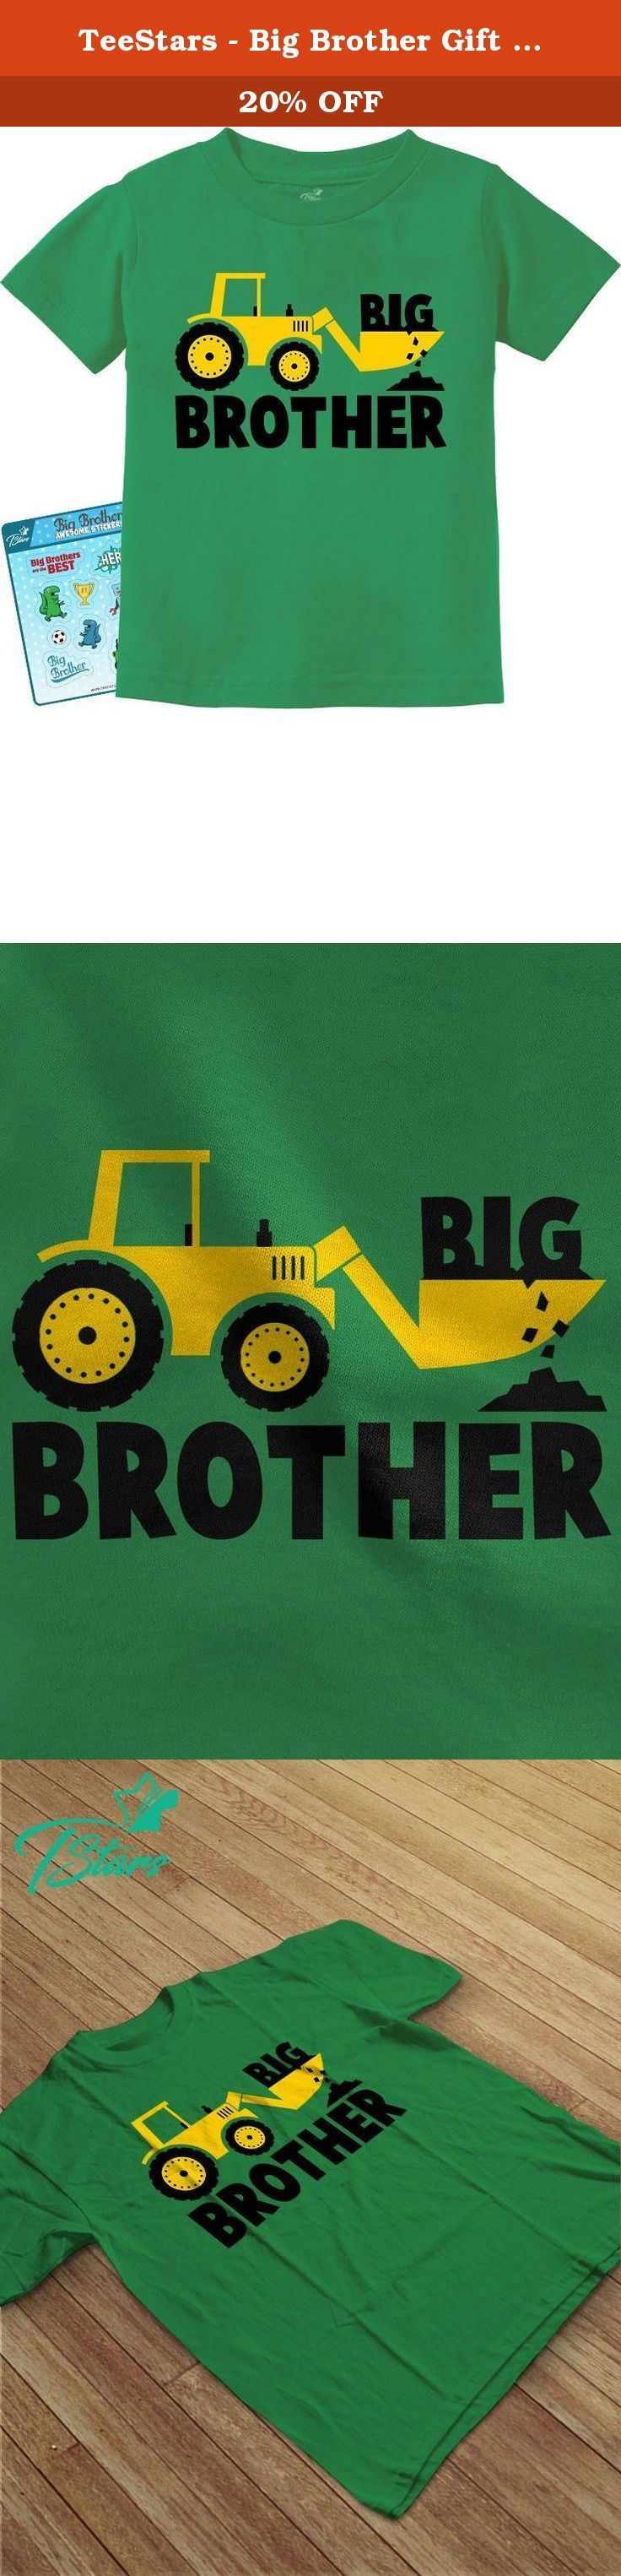 TeeStars - Big Brother Gift for Tractor Loving Boys Toddler/Infant Kids T-Shirt 2T Green. Great Big Brother gift idea! Perfect present for big brothers, Tractor Loving Boys. Pregnancy announcement / baby shower gifts. Cute little kids Tee. Premium quality, short sleeved t-shirt. preshrunk 100% combed-cotton knit, machine washable. Available in a wide variety of colors and sizes: Infant sizes: 6 - 24 Months / Toddler sizes: 2T-7T. Choose the size and color options from the drop-down list....